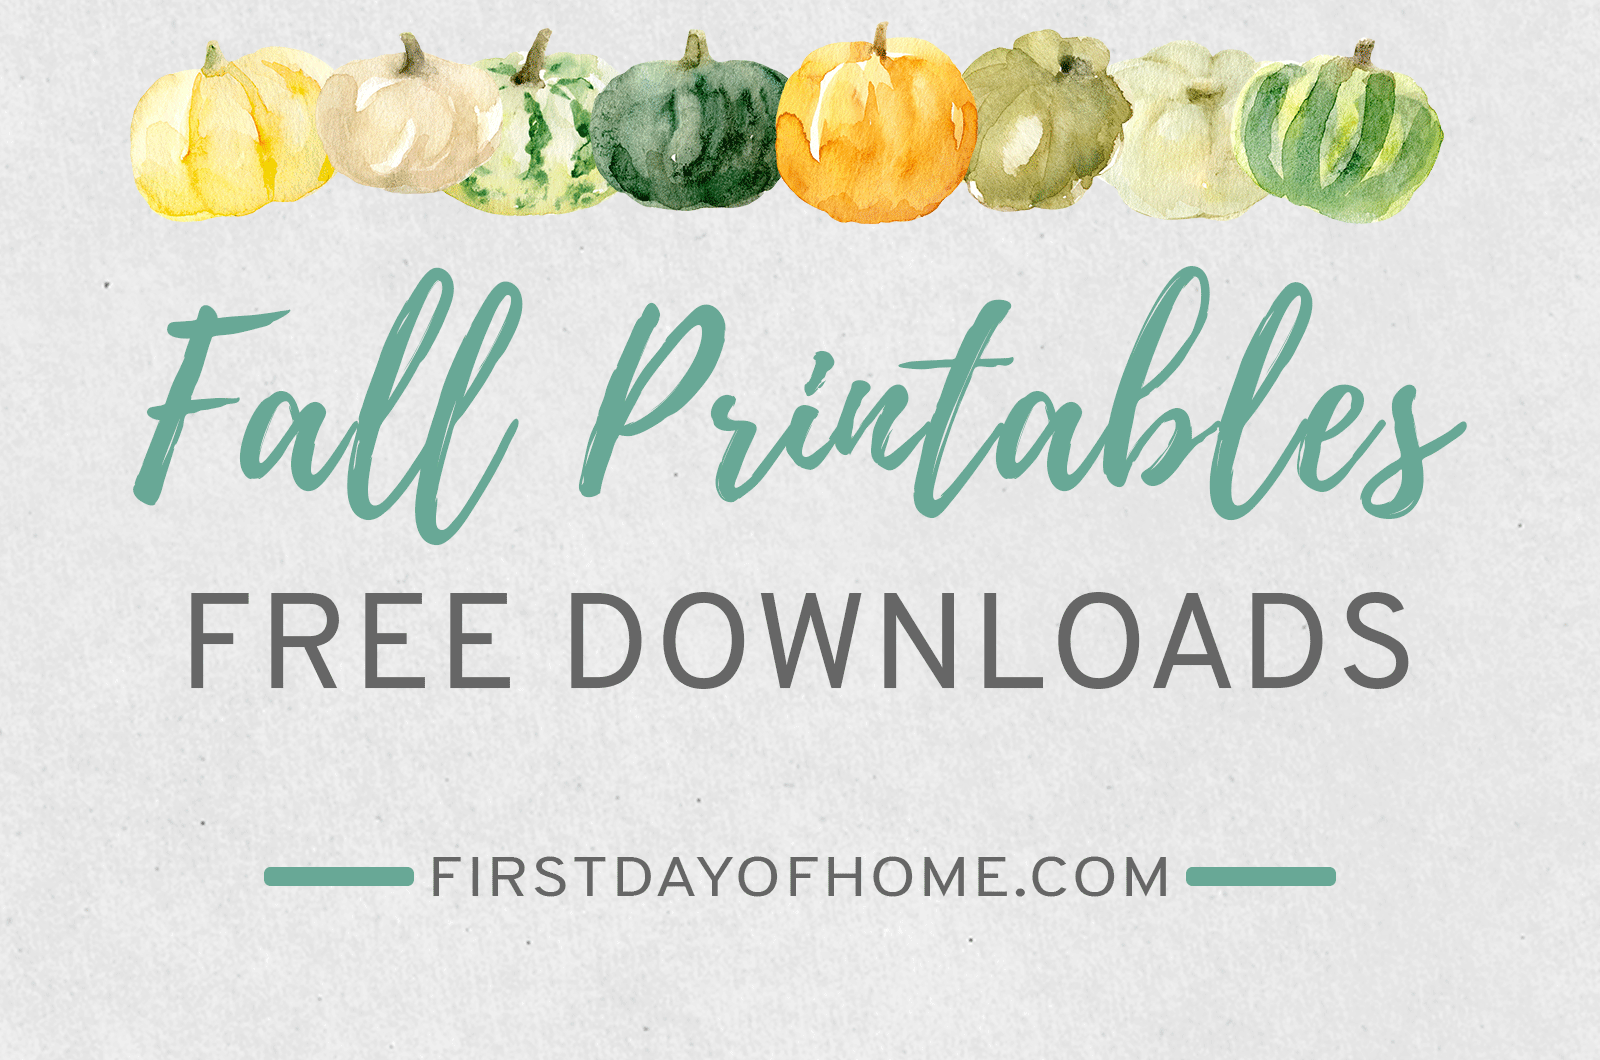 Free printables free downloads from First Day of Home